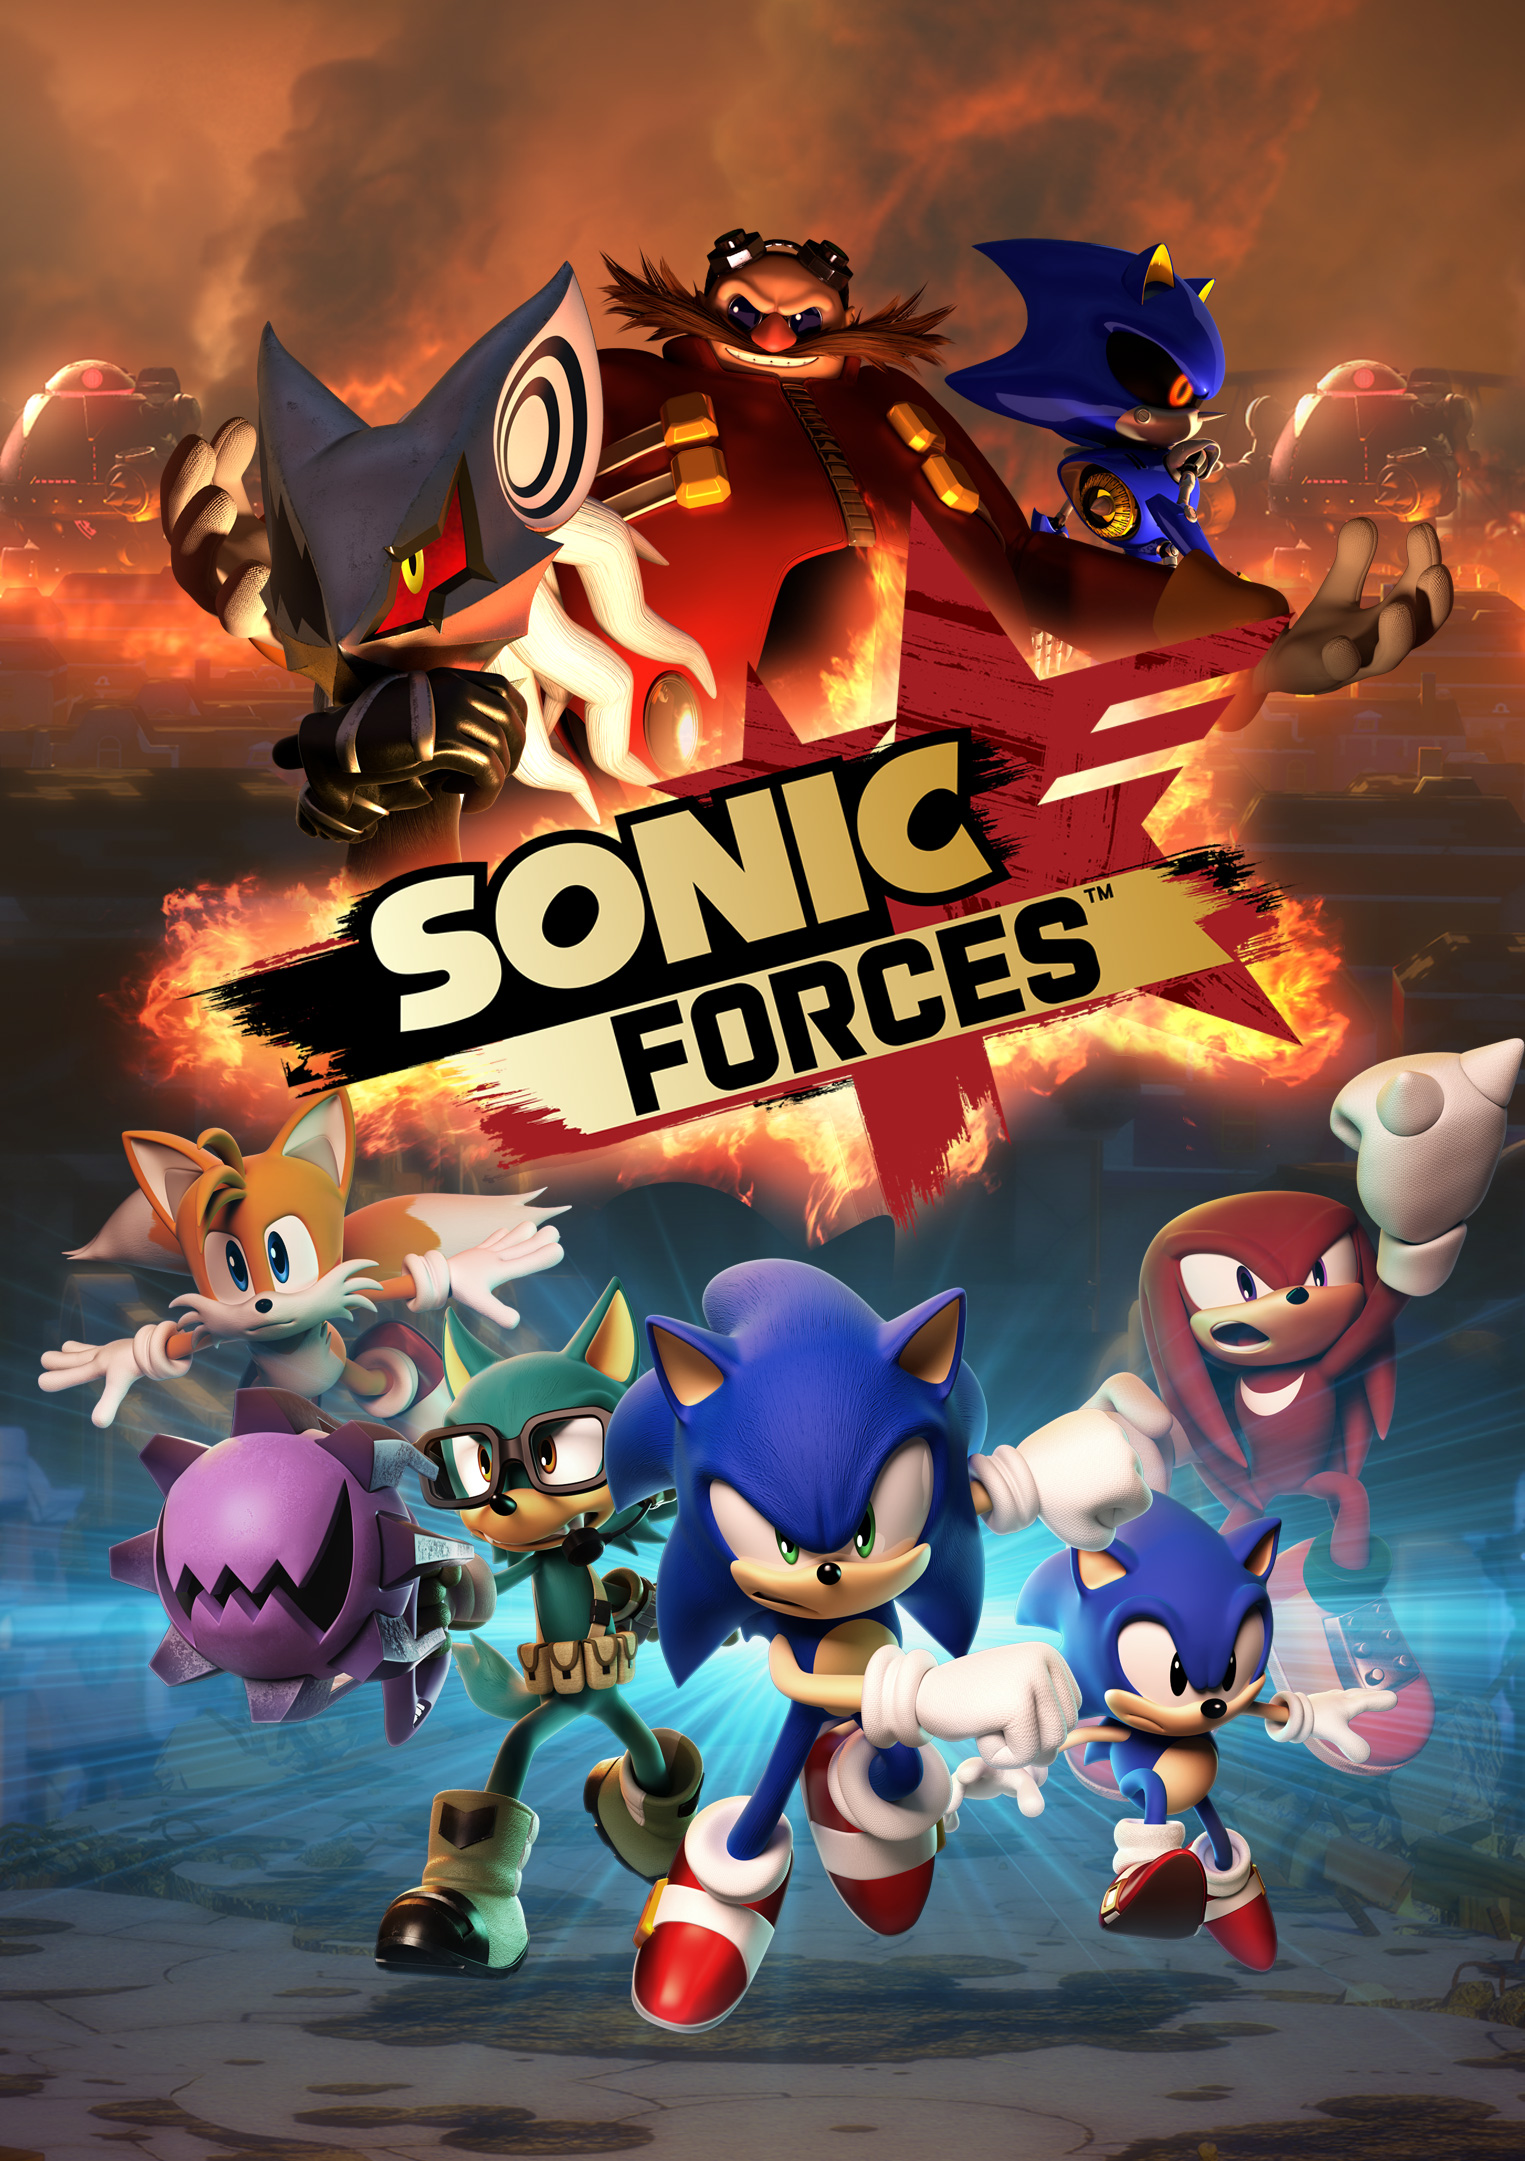 https://img5.downloadha.com/hosein/Game/November%202017/06/Sonic-Forces-pc-cover-large.jpg